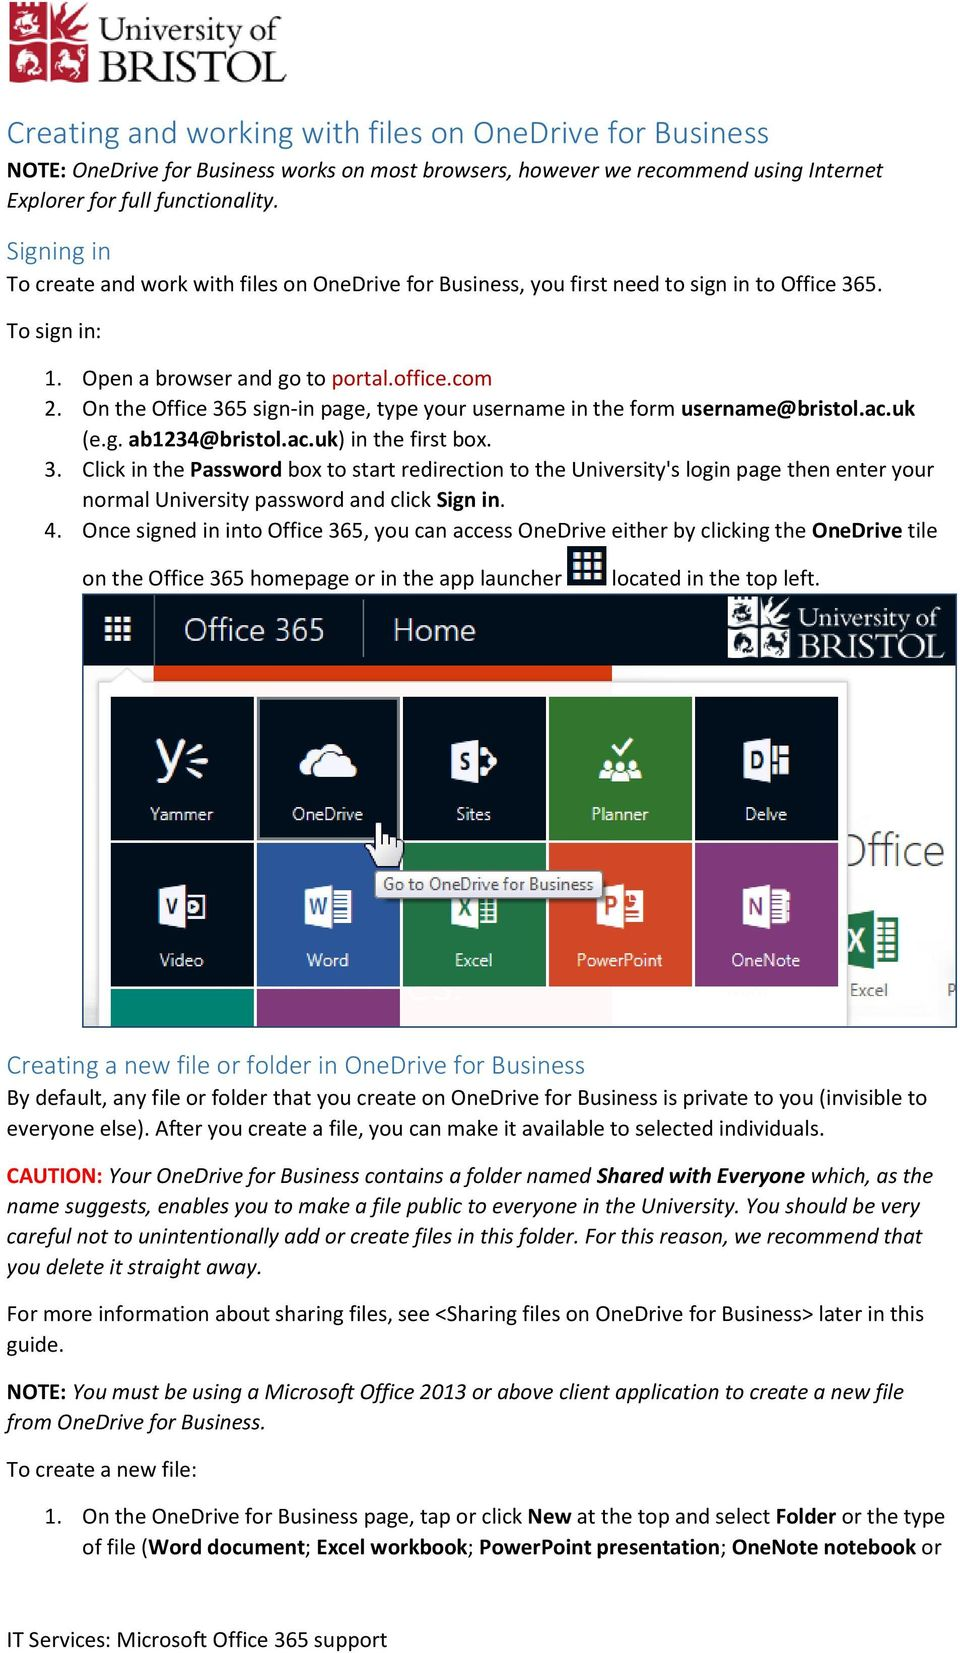 On the Office 365 sign-in page, type your username in the form username@bristol.ac.uk (e.g. ab1234@bristol.ac.uk) in the first box. 3. Click in the Password box to start redirection to the University's login page then enter your normal University password and click Sign in.